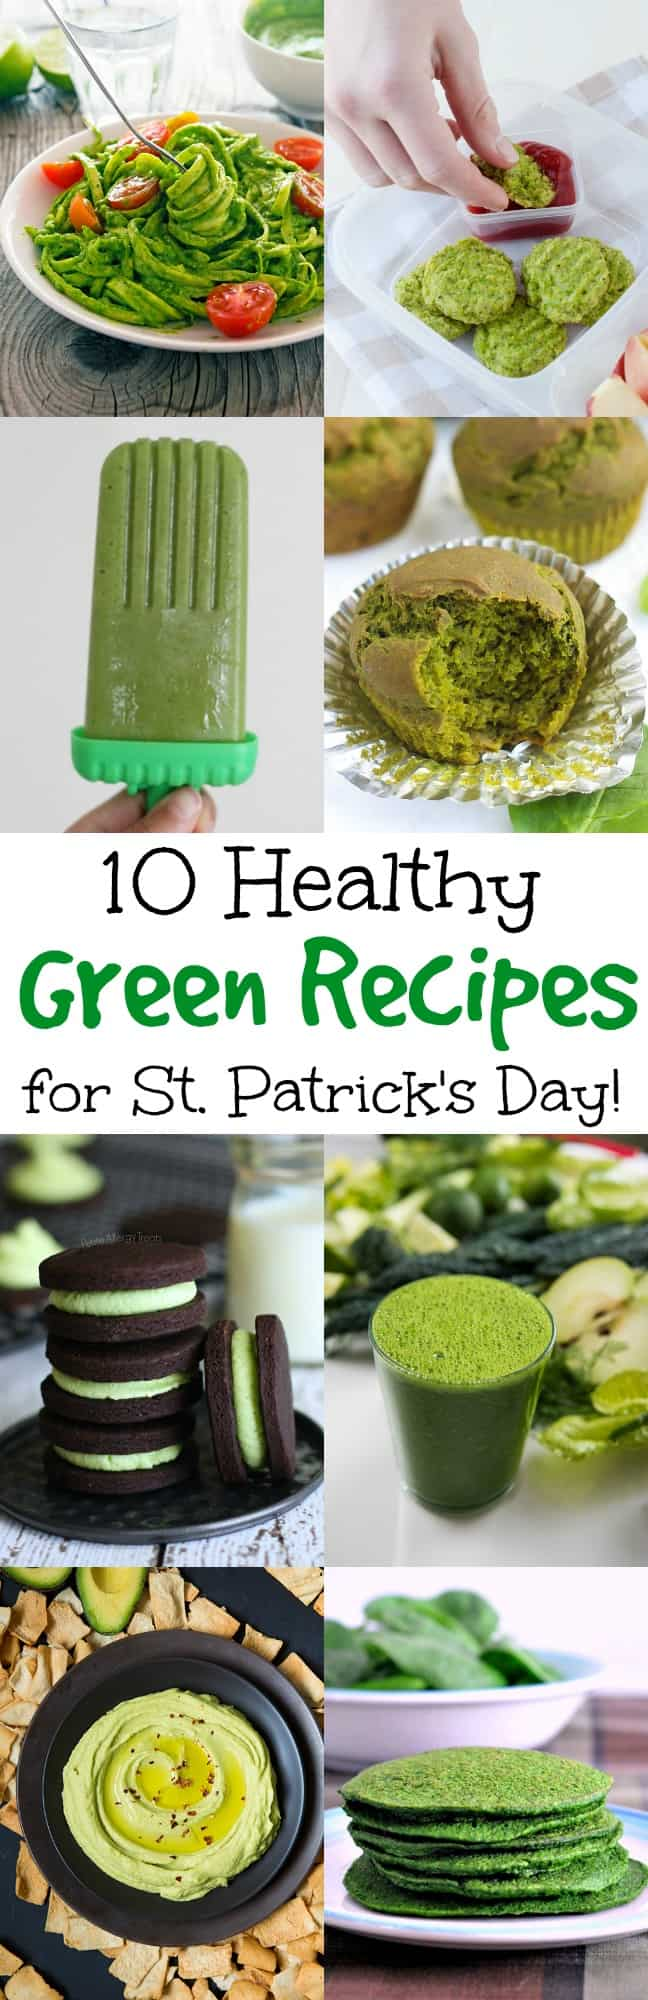 10 Healthy Green Recipes for St. Patrick's Day